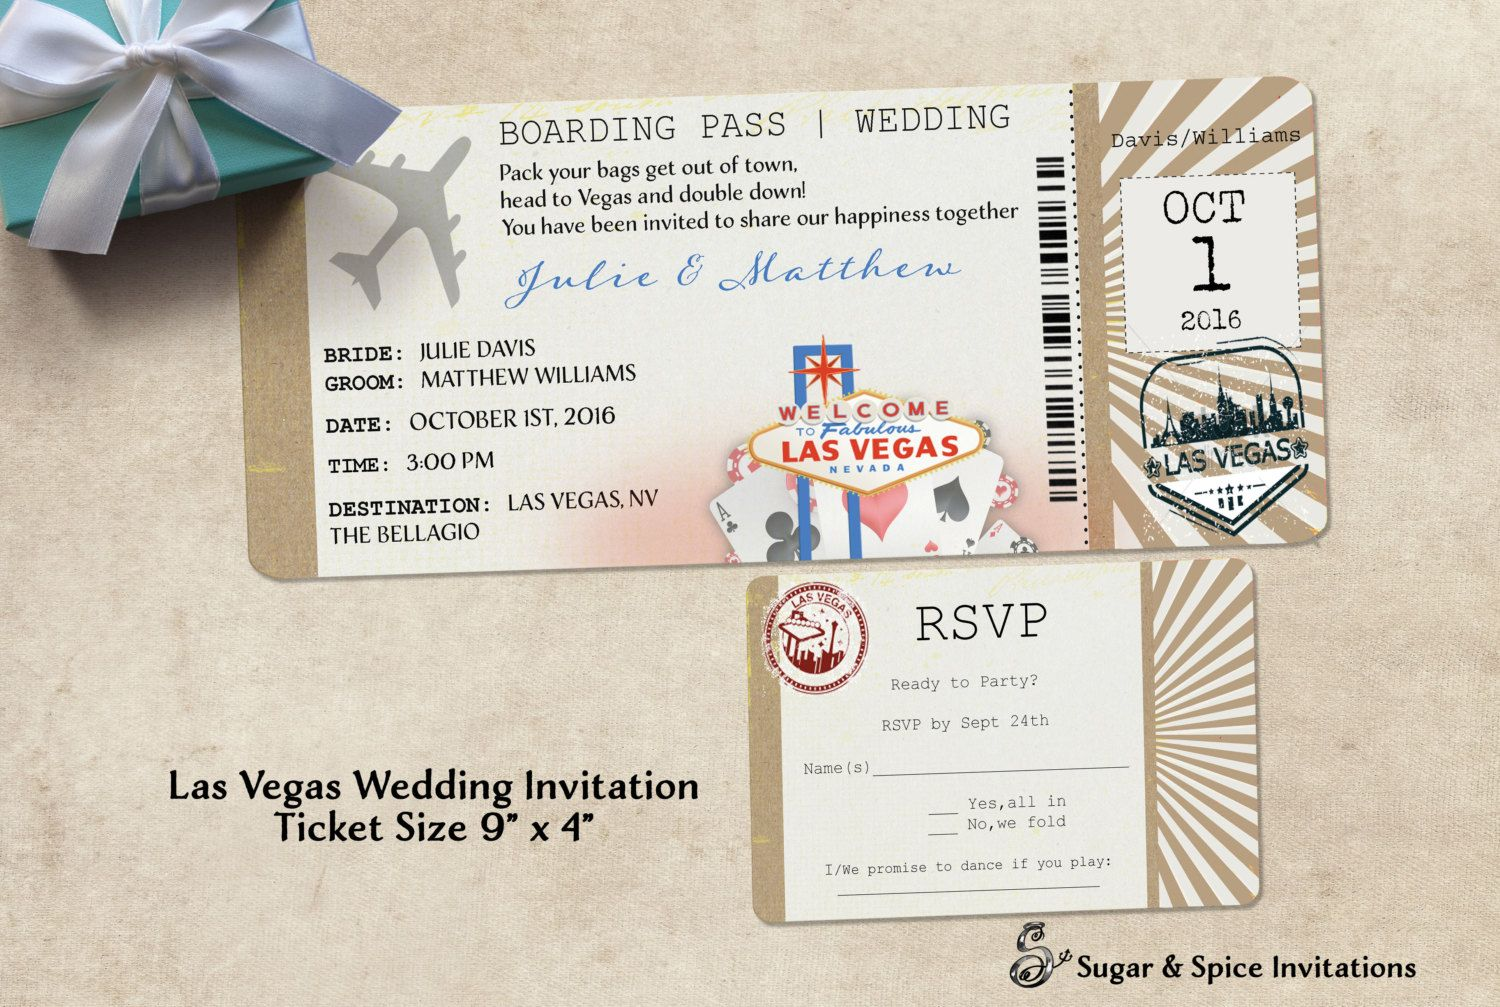 Las Vegas Wedding Invitation Ticket By